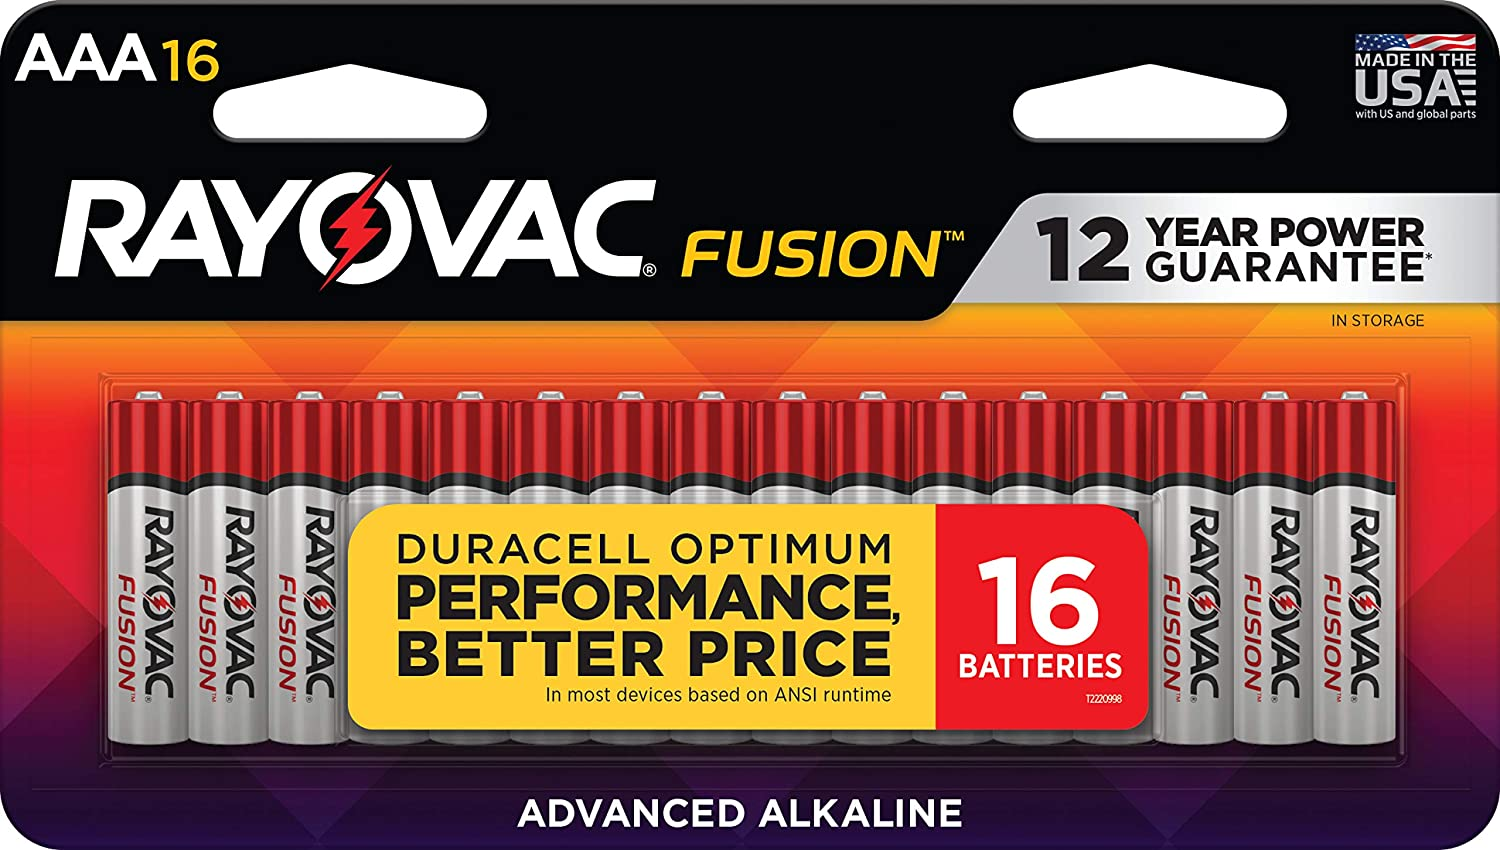 Rayovac Fusion AAA Batteries National uniform free shipping Premium A Challenge the lowest price of Japan ☆ Triple Batterie Alkaline